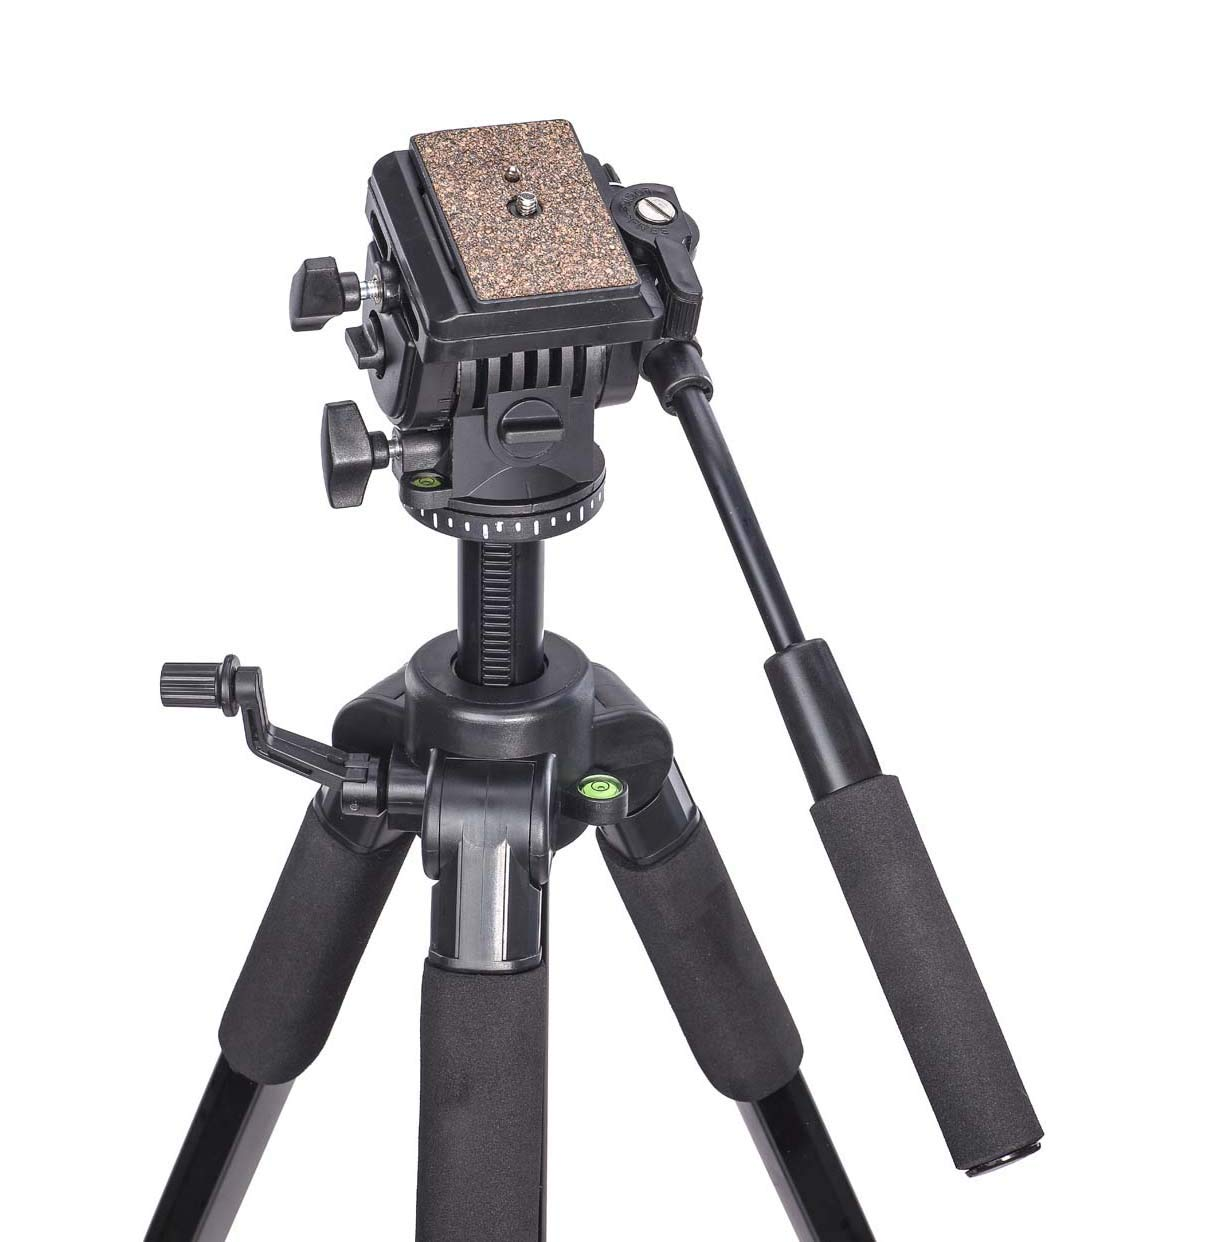 Simpex 880- Best Tripods for Mobile Phones in India